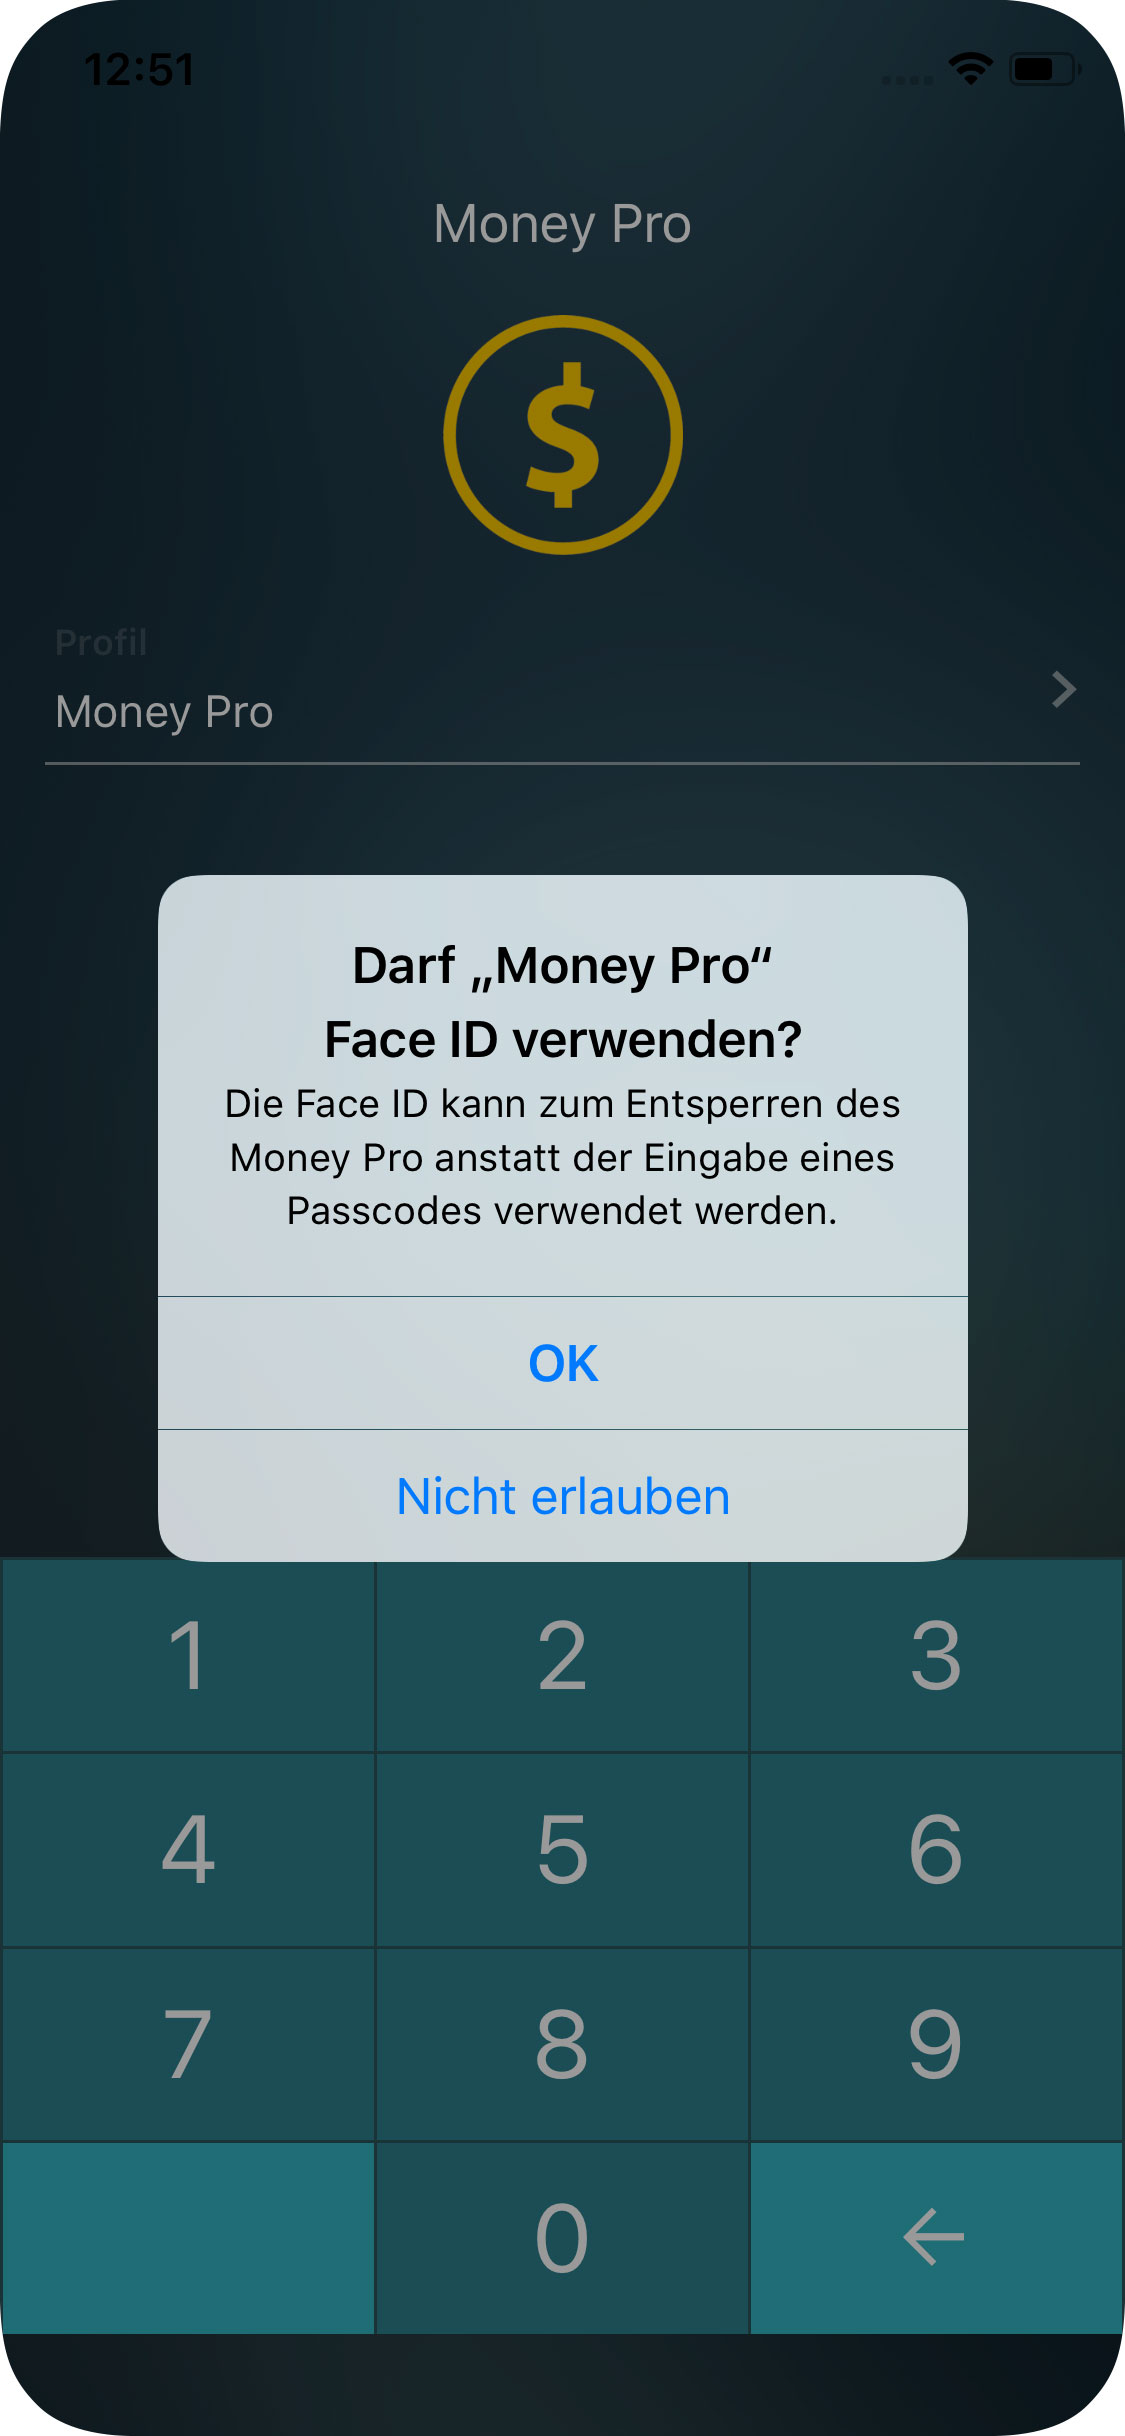 Money Pro - Touch ID / Face ID - iPhone